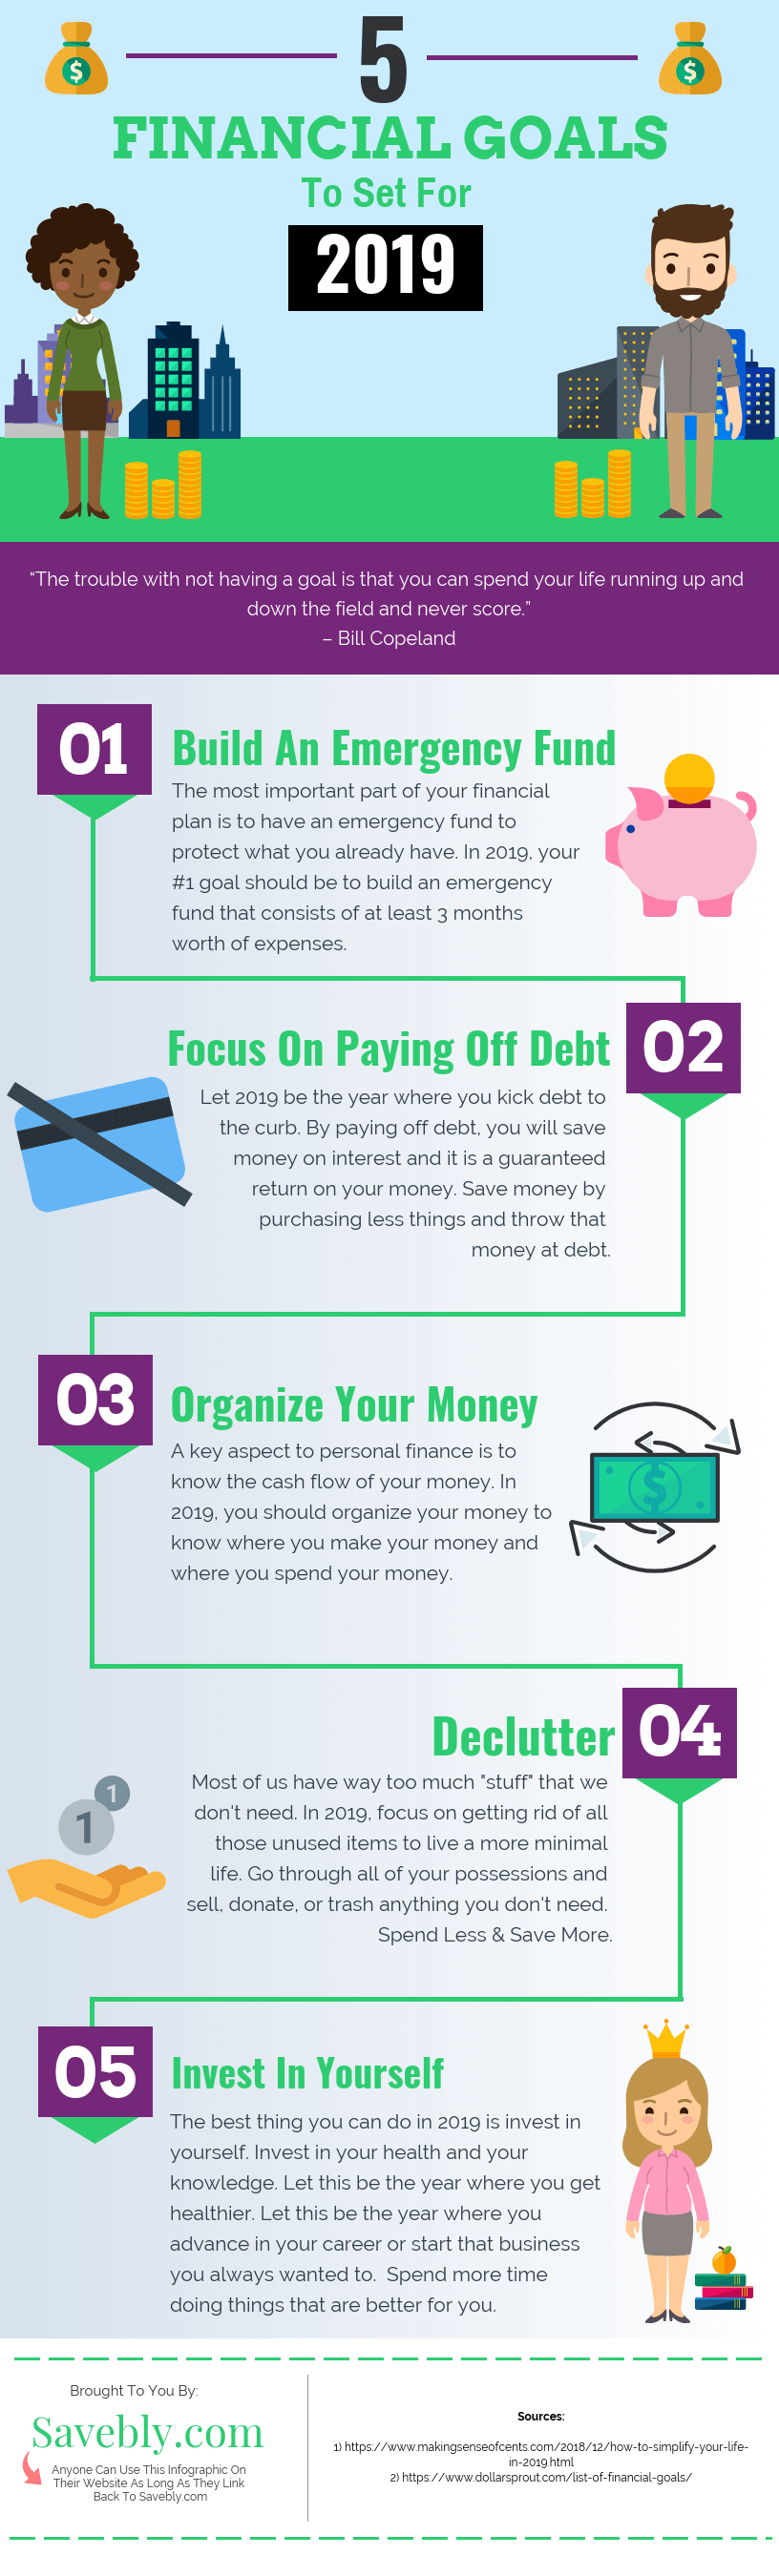 Financial-Goals-In-2019-infographic-plaza